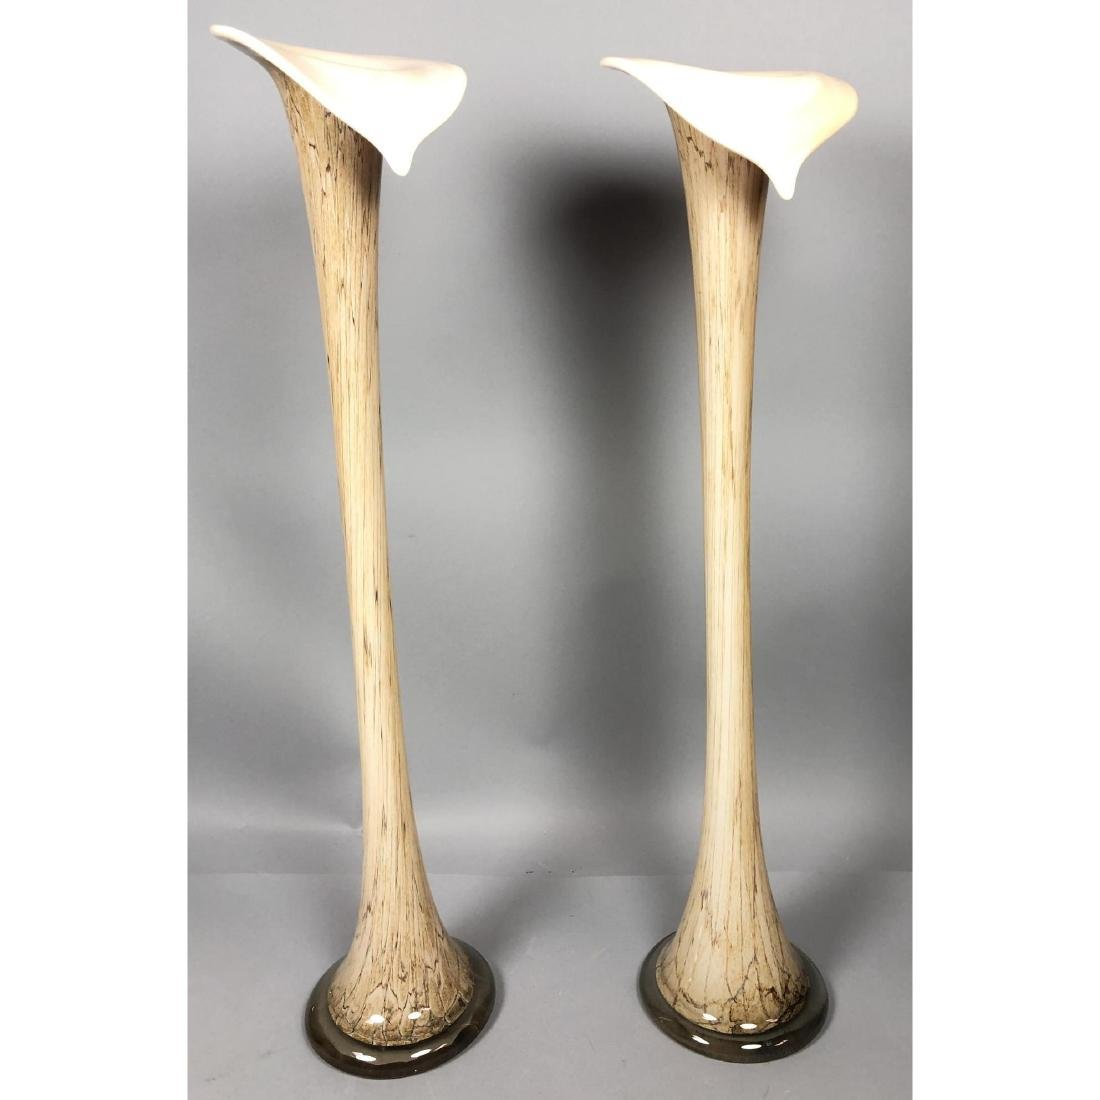 Pr Murano Art Glass Tall Lily Shaped Vases. Swoll